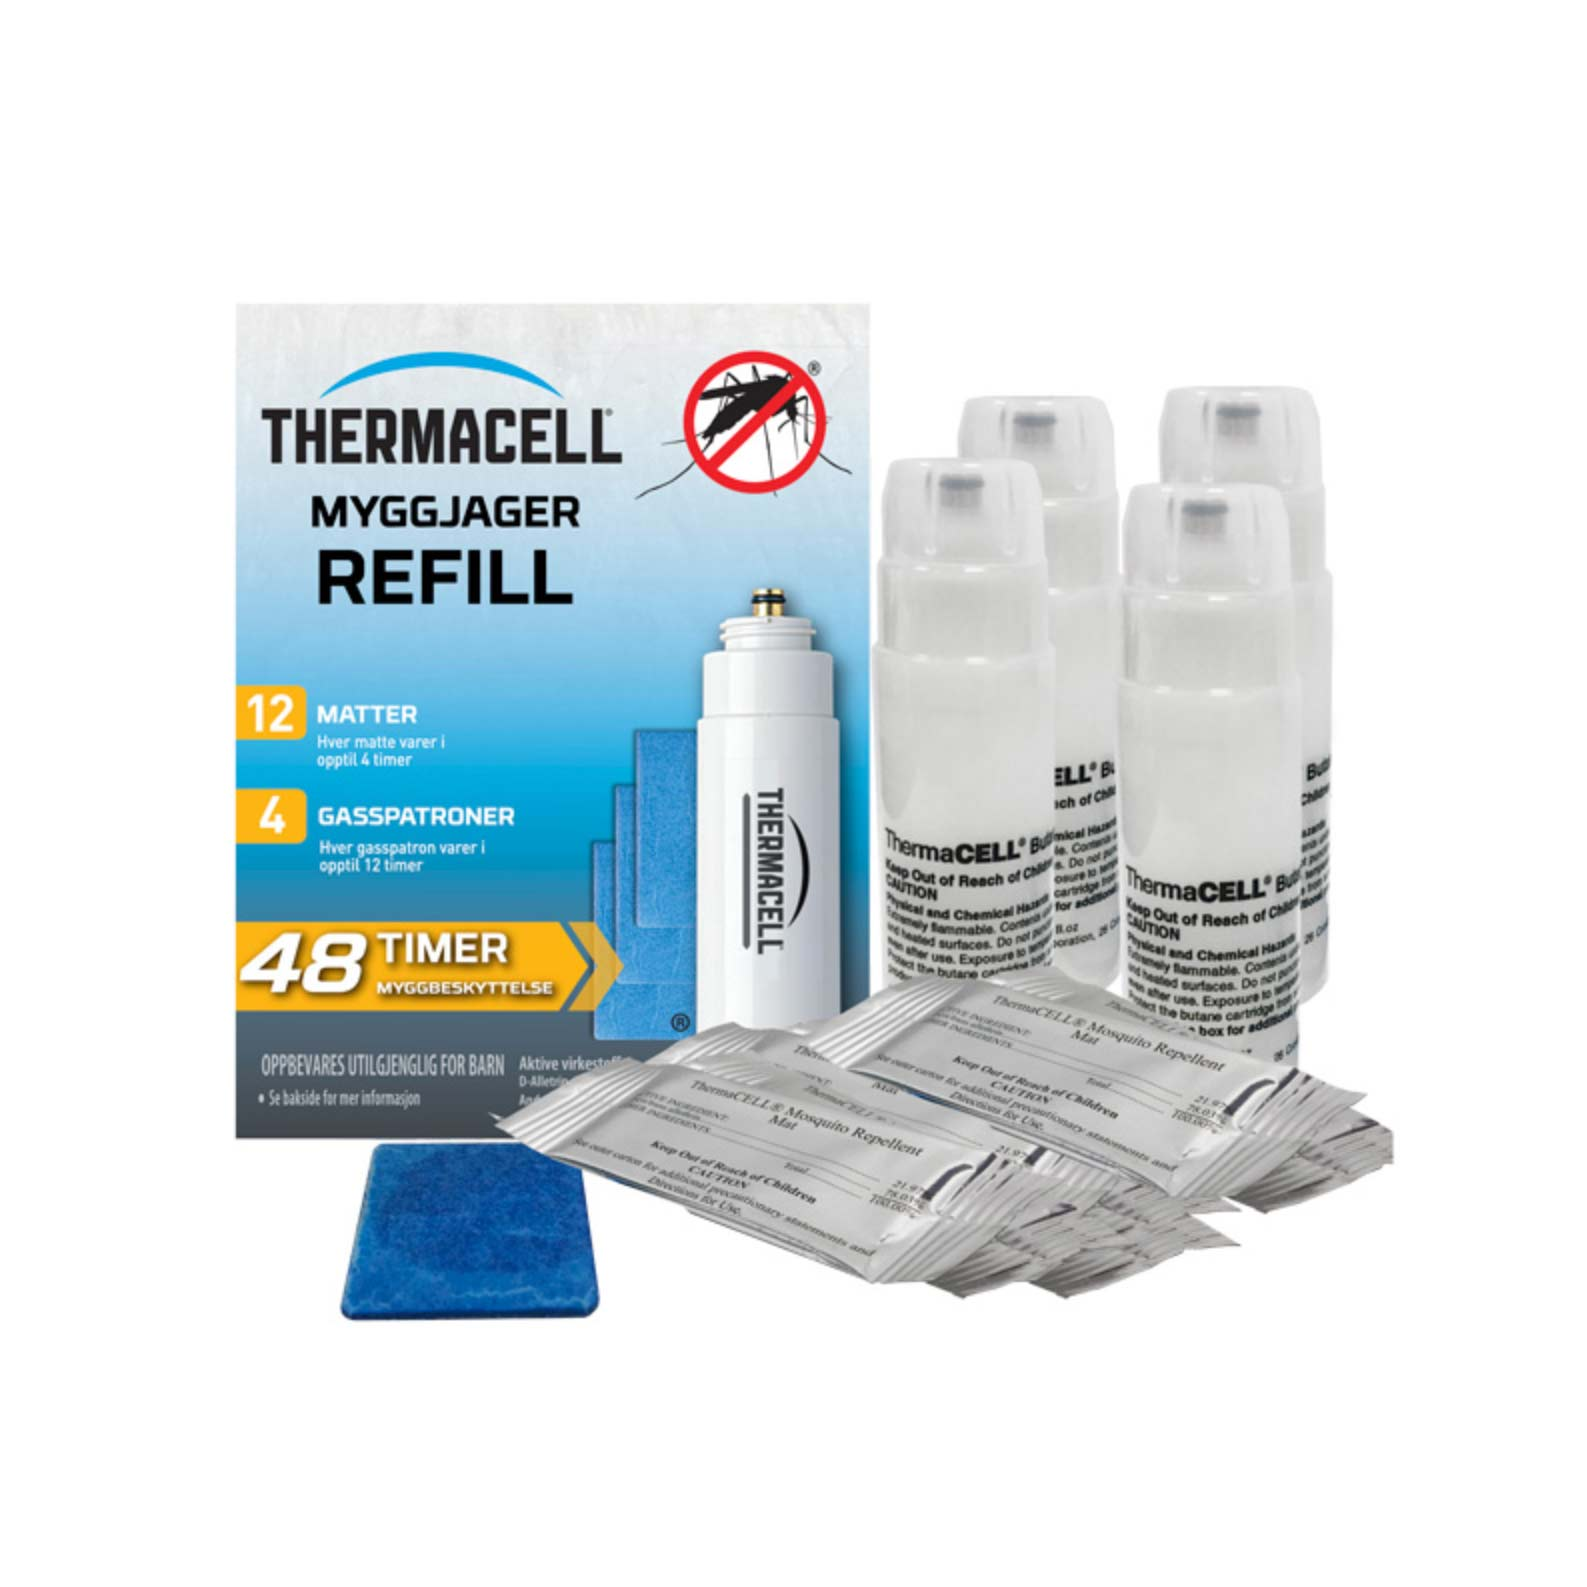 THERMACELL - MYGGJAGER REFILL 4-PK